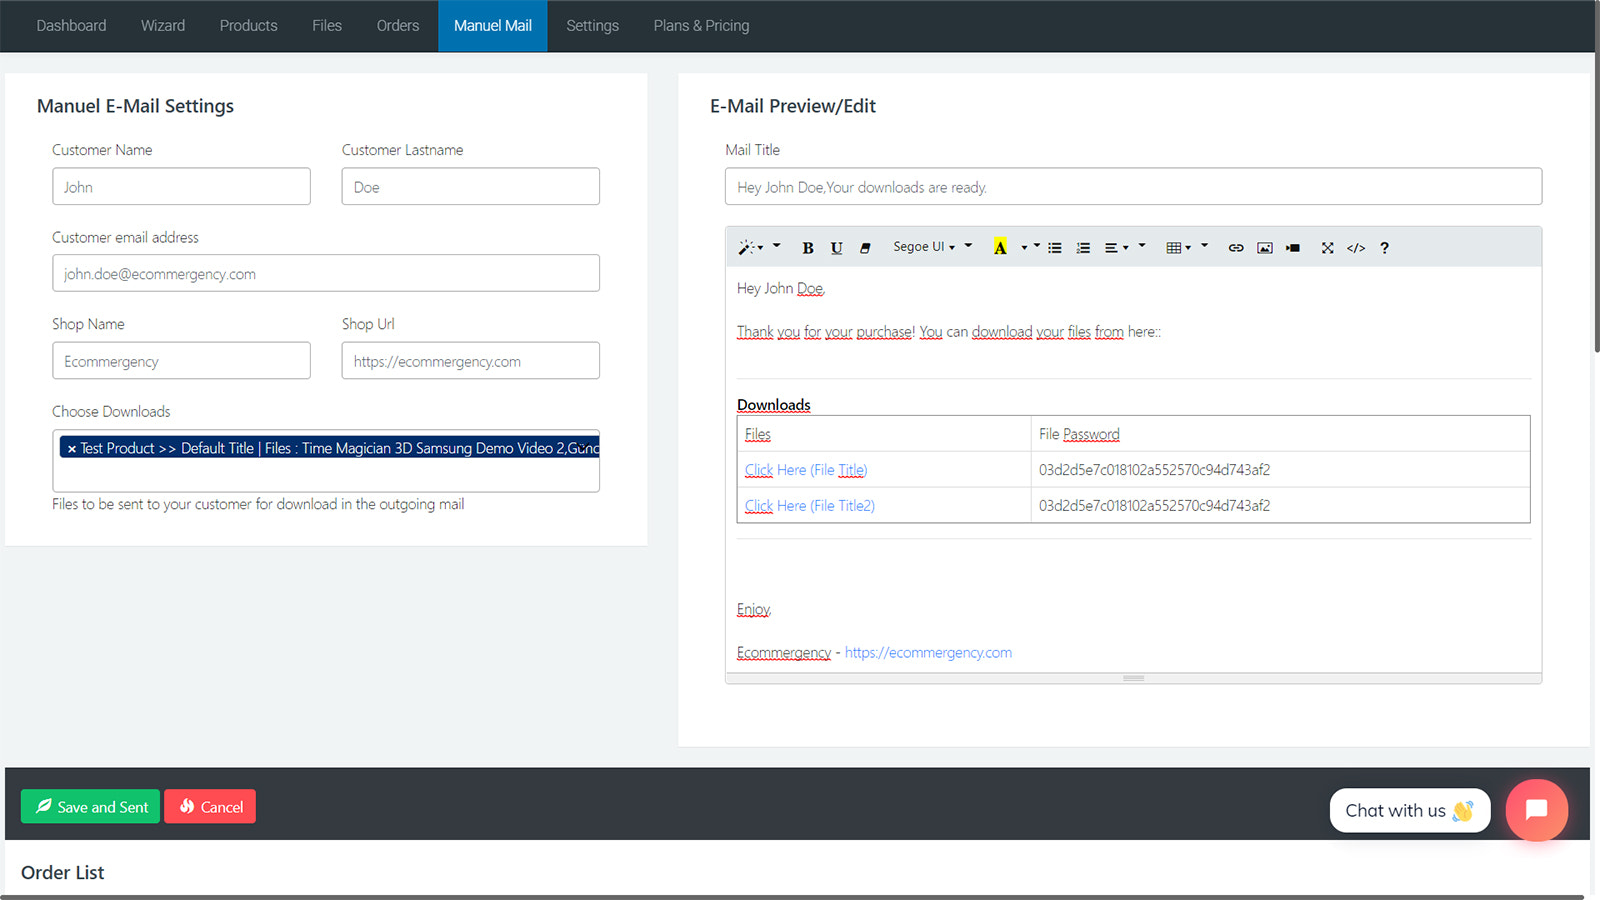 You can also manually send your files to your customers